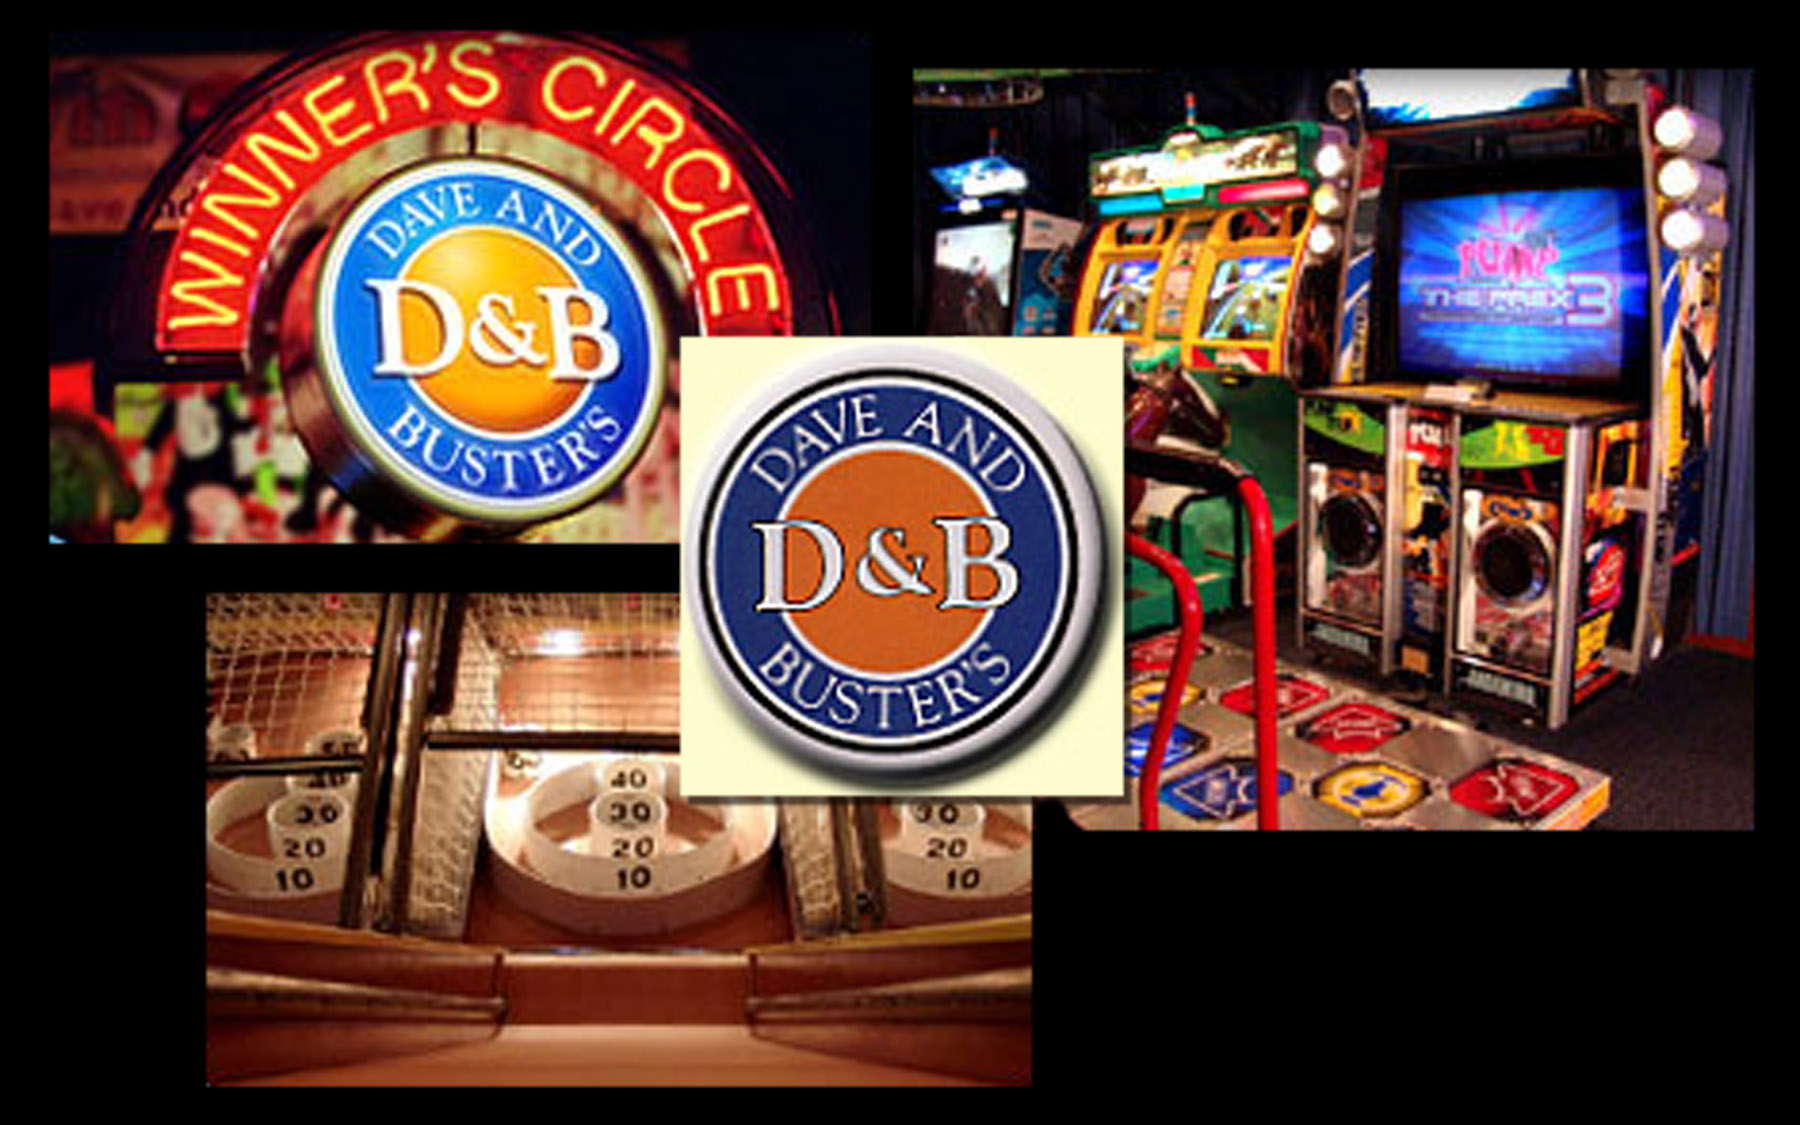 Dave & Buster's in Edina, MN